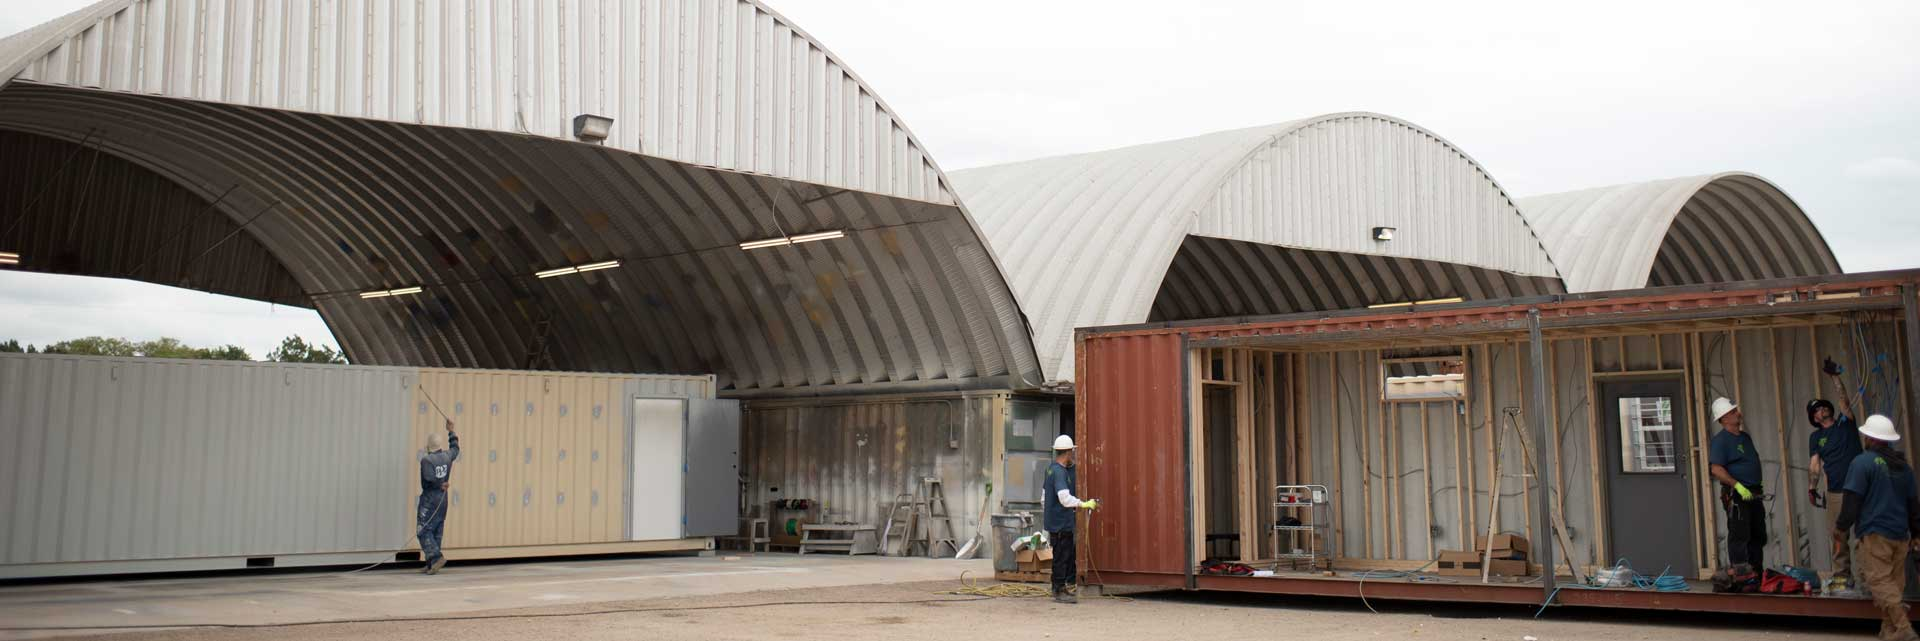 Falcon Structures manufacturing domes